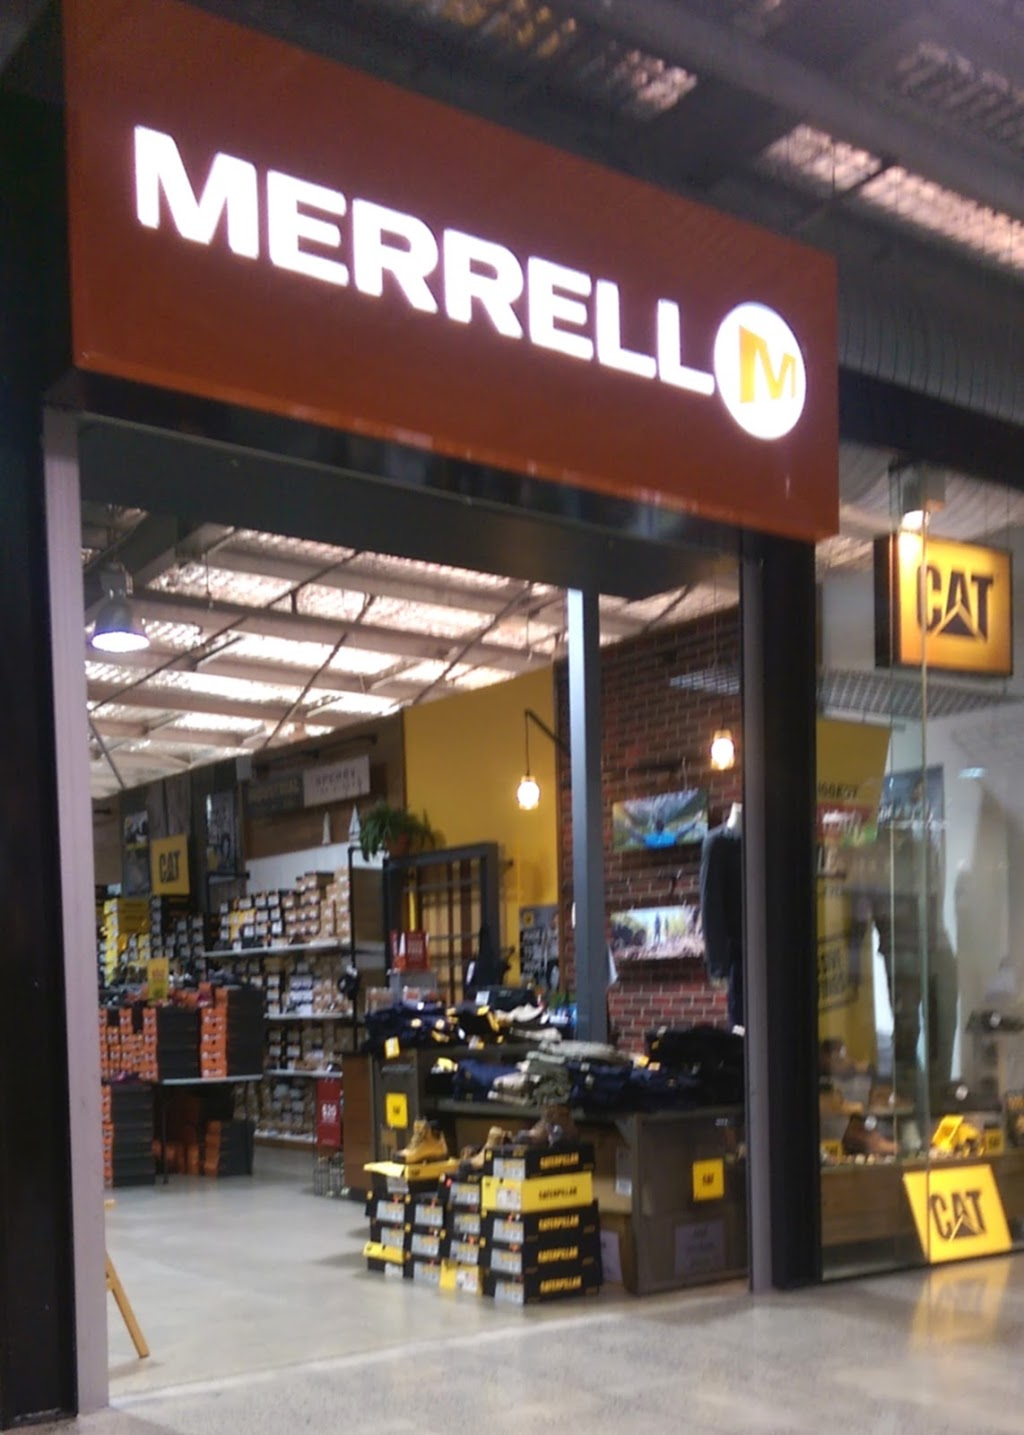 merrell size up queensland